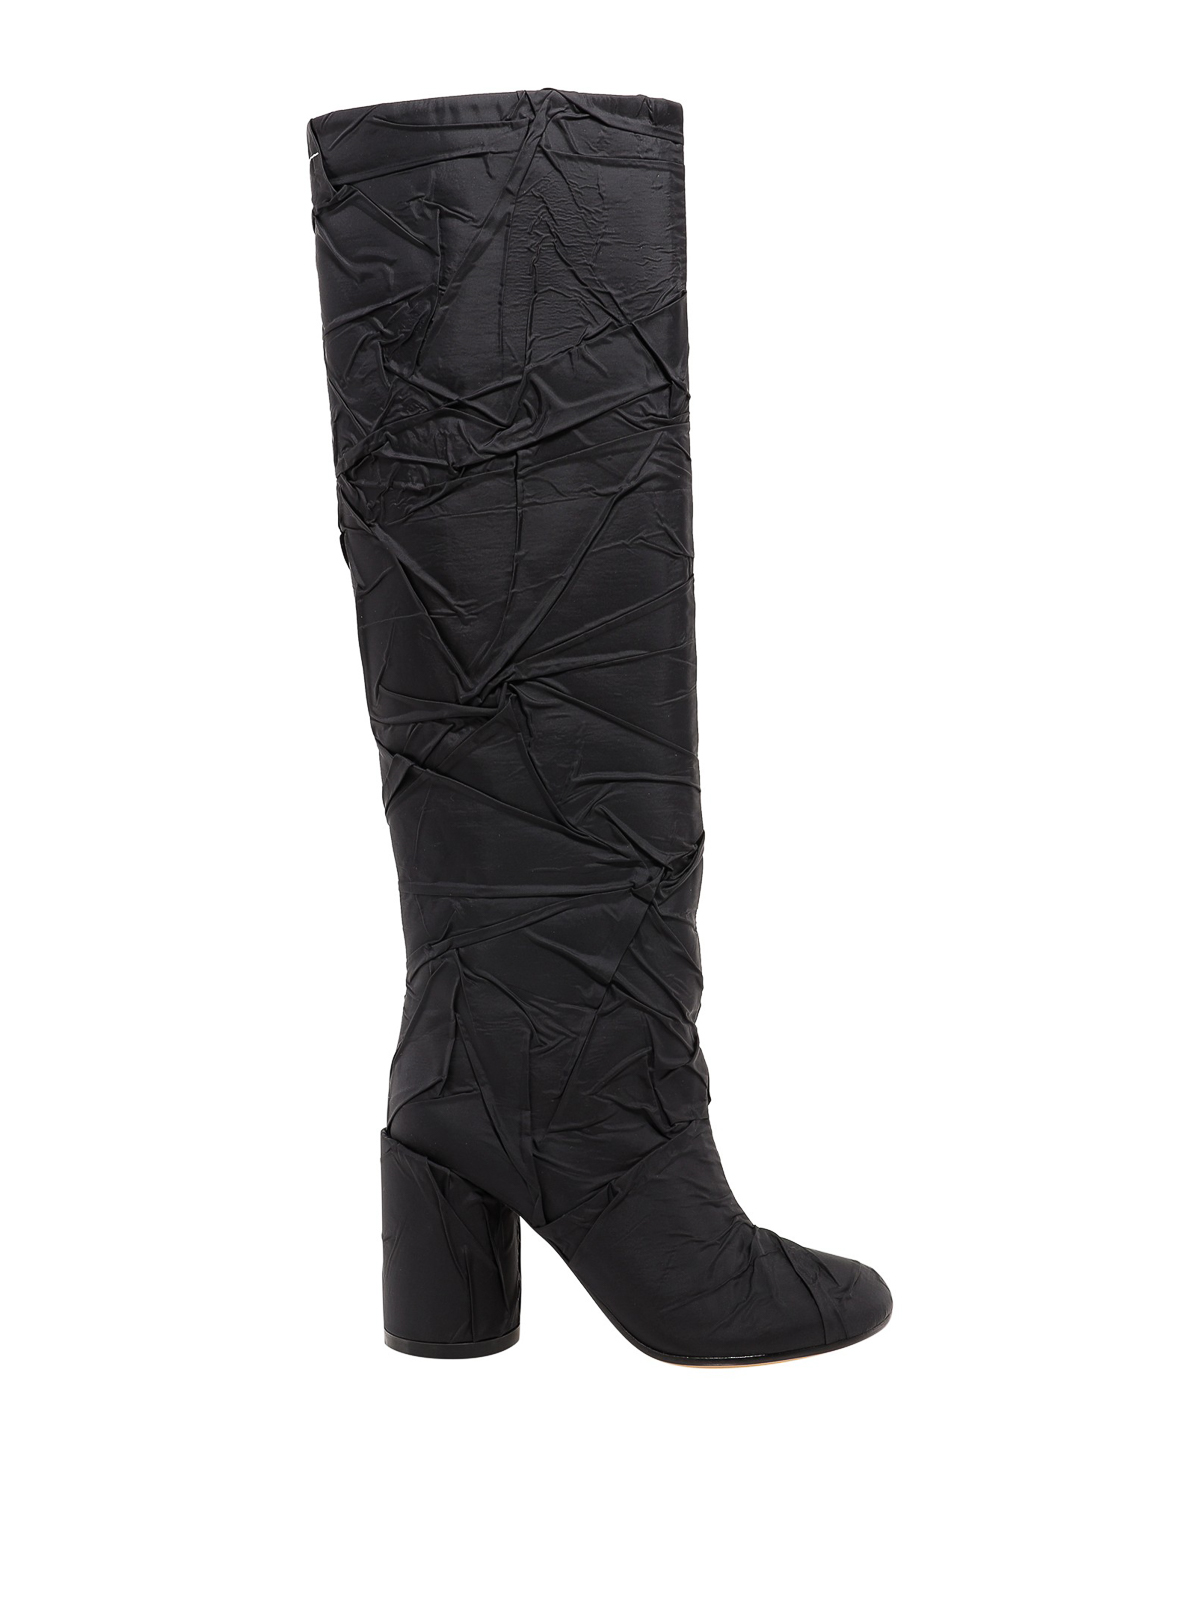 Mm6 Maison Margiela CRINKLE EFFECT BOOTS